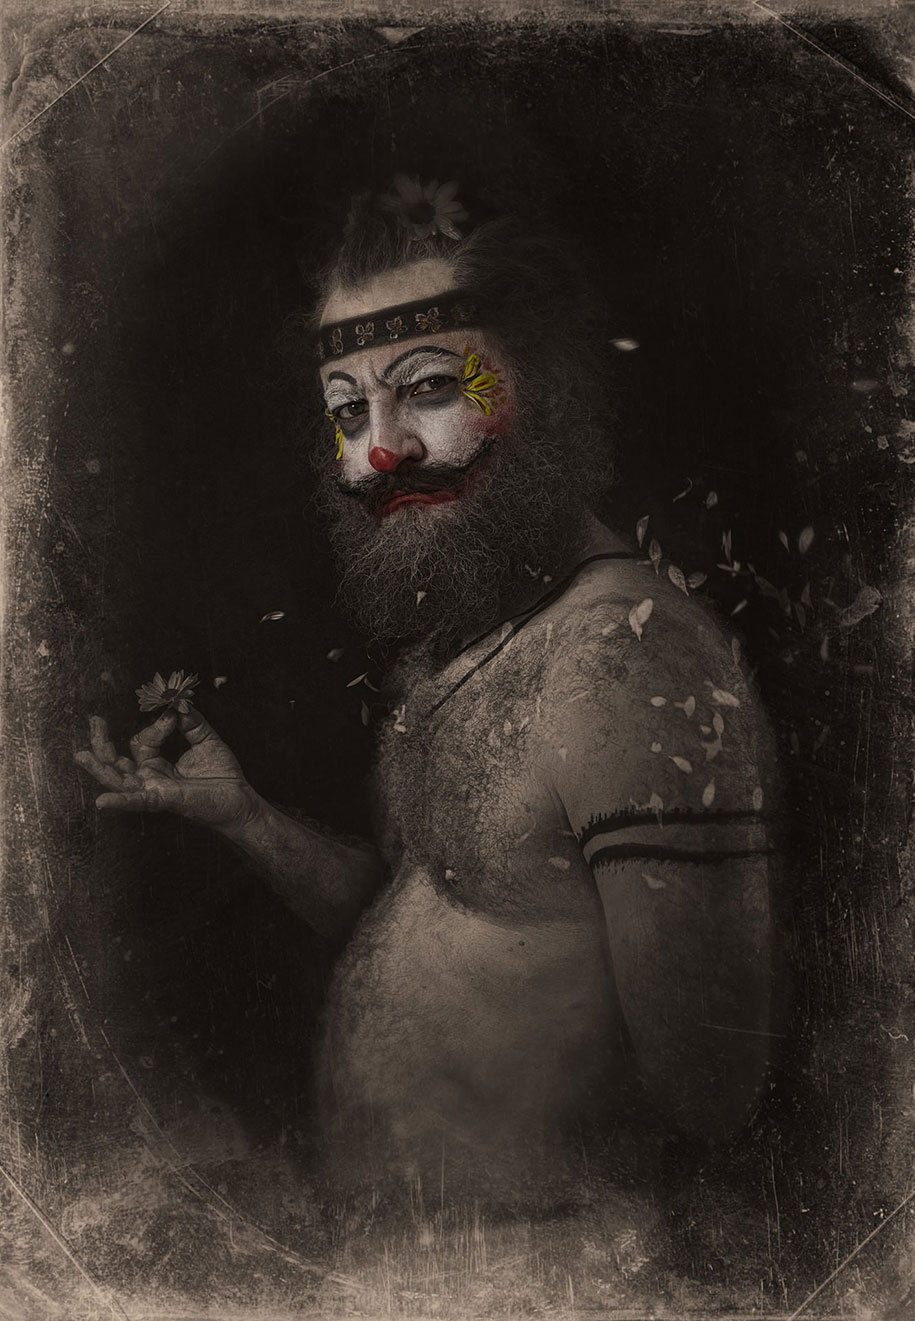 macabre-scary-clown-portraits-clownville-eolo-perfido-2